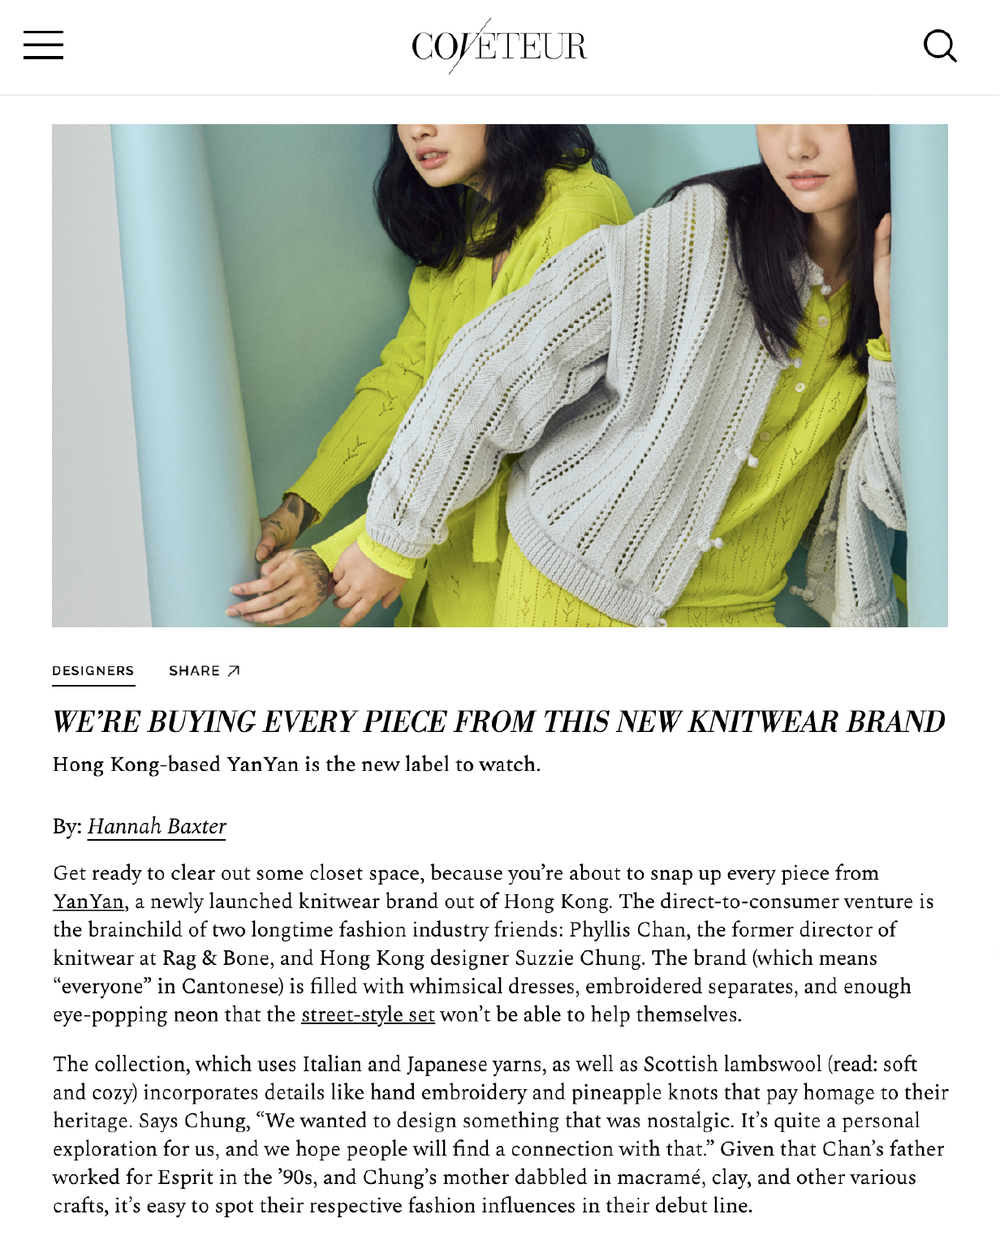 http://coveteur.com/2019/04/03/knitwear-brand-yanyan-launches-first-collection/